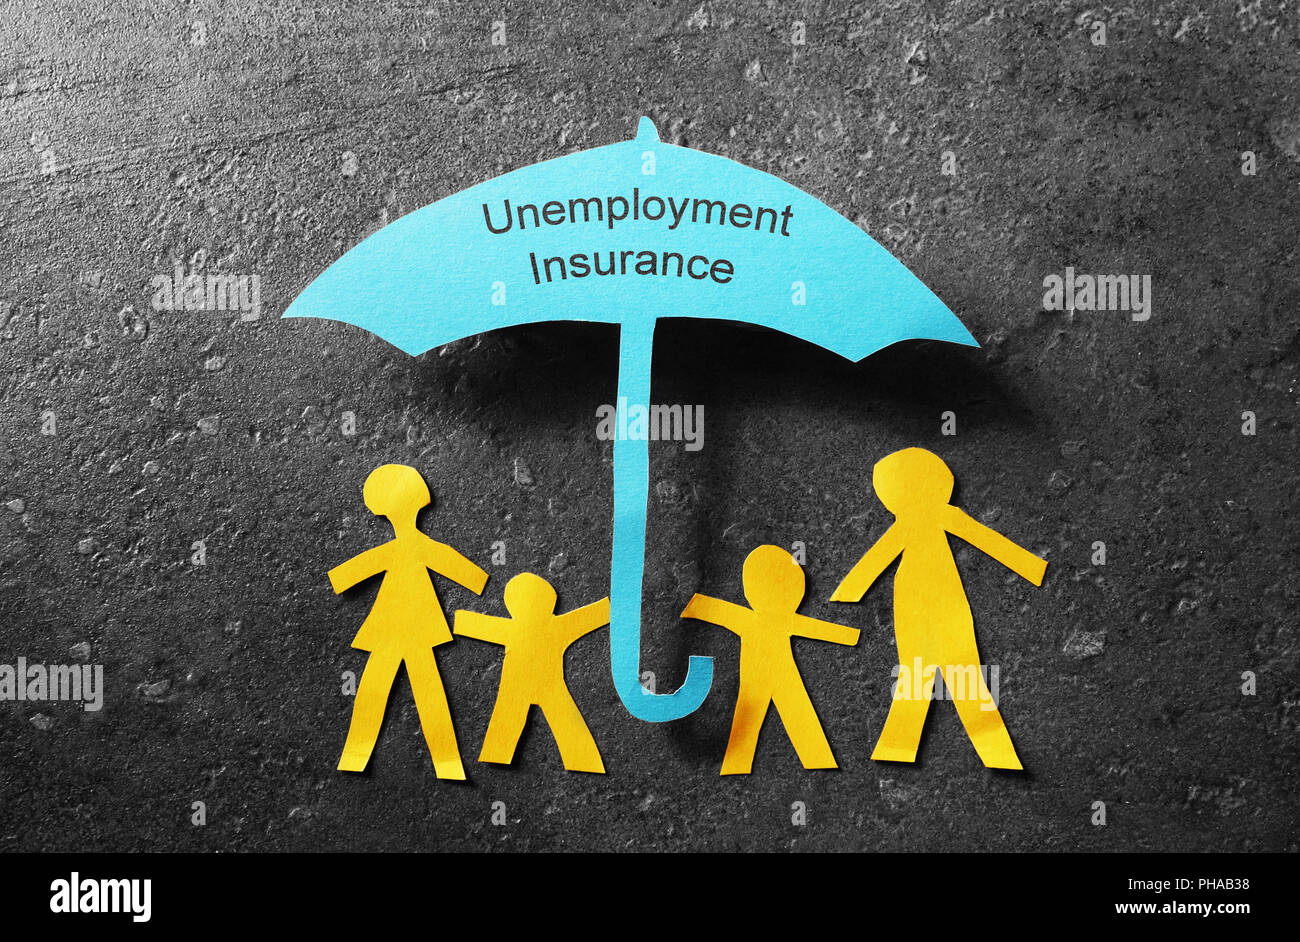 Unemployment Insurance umbrella - Stock Image